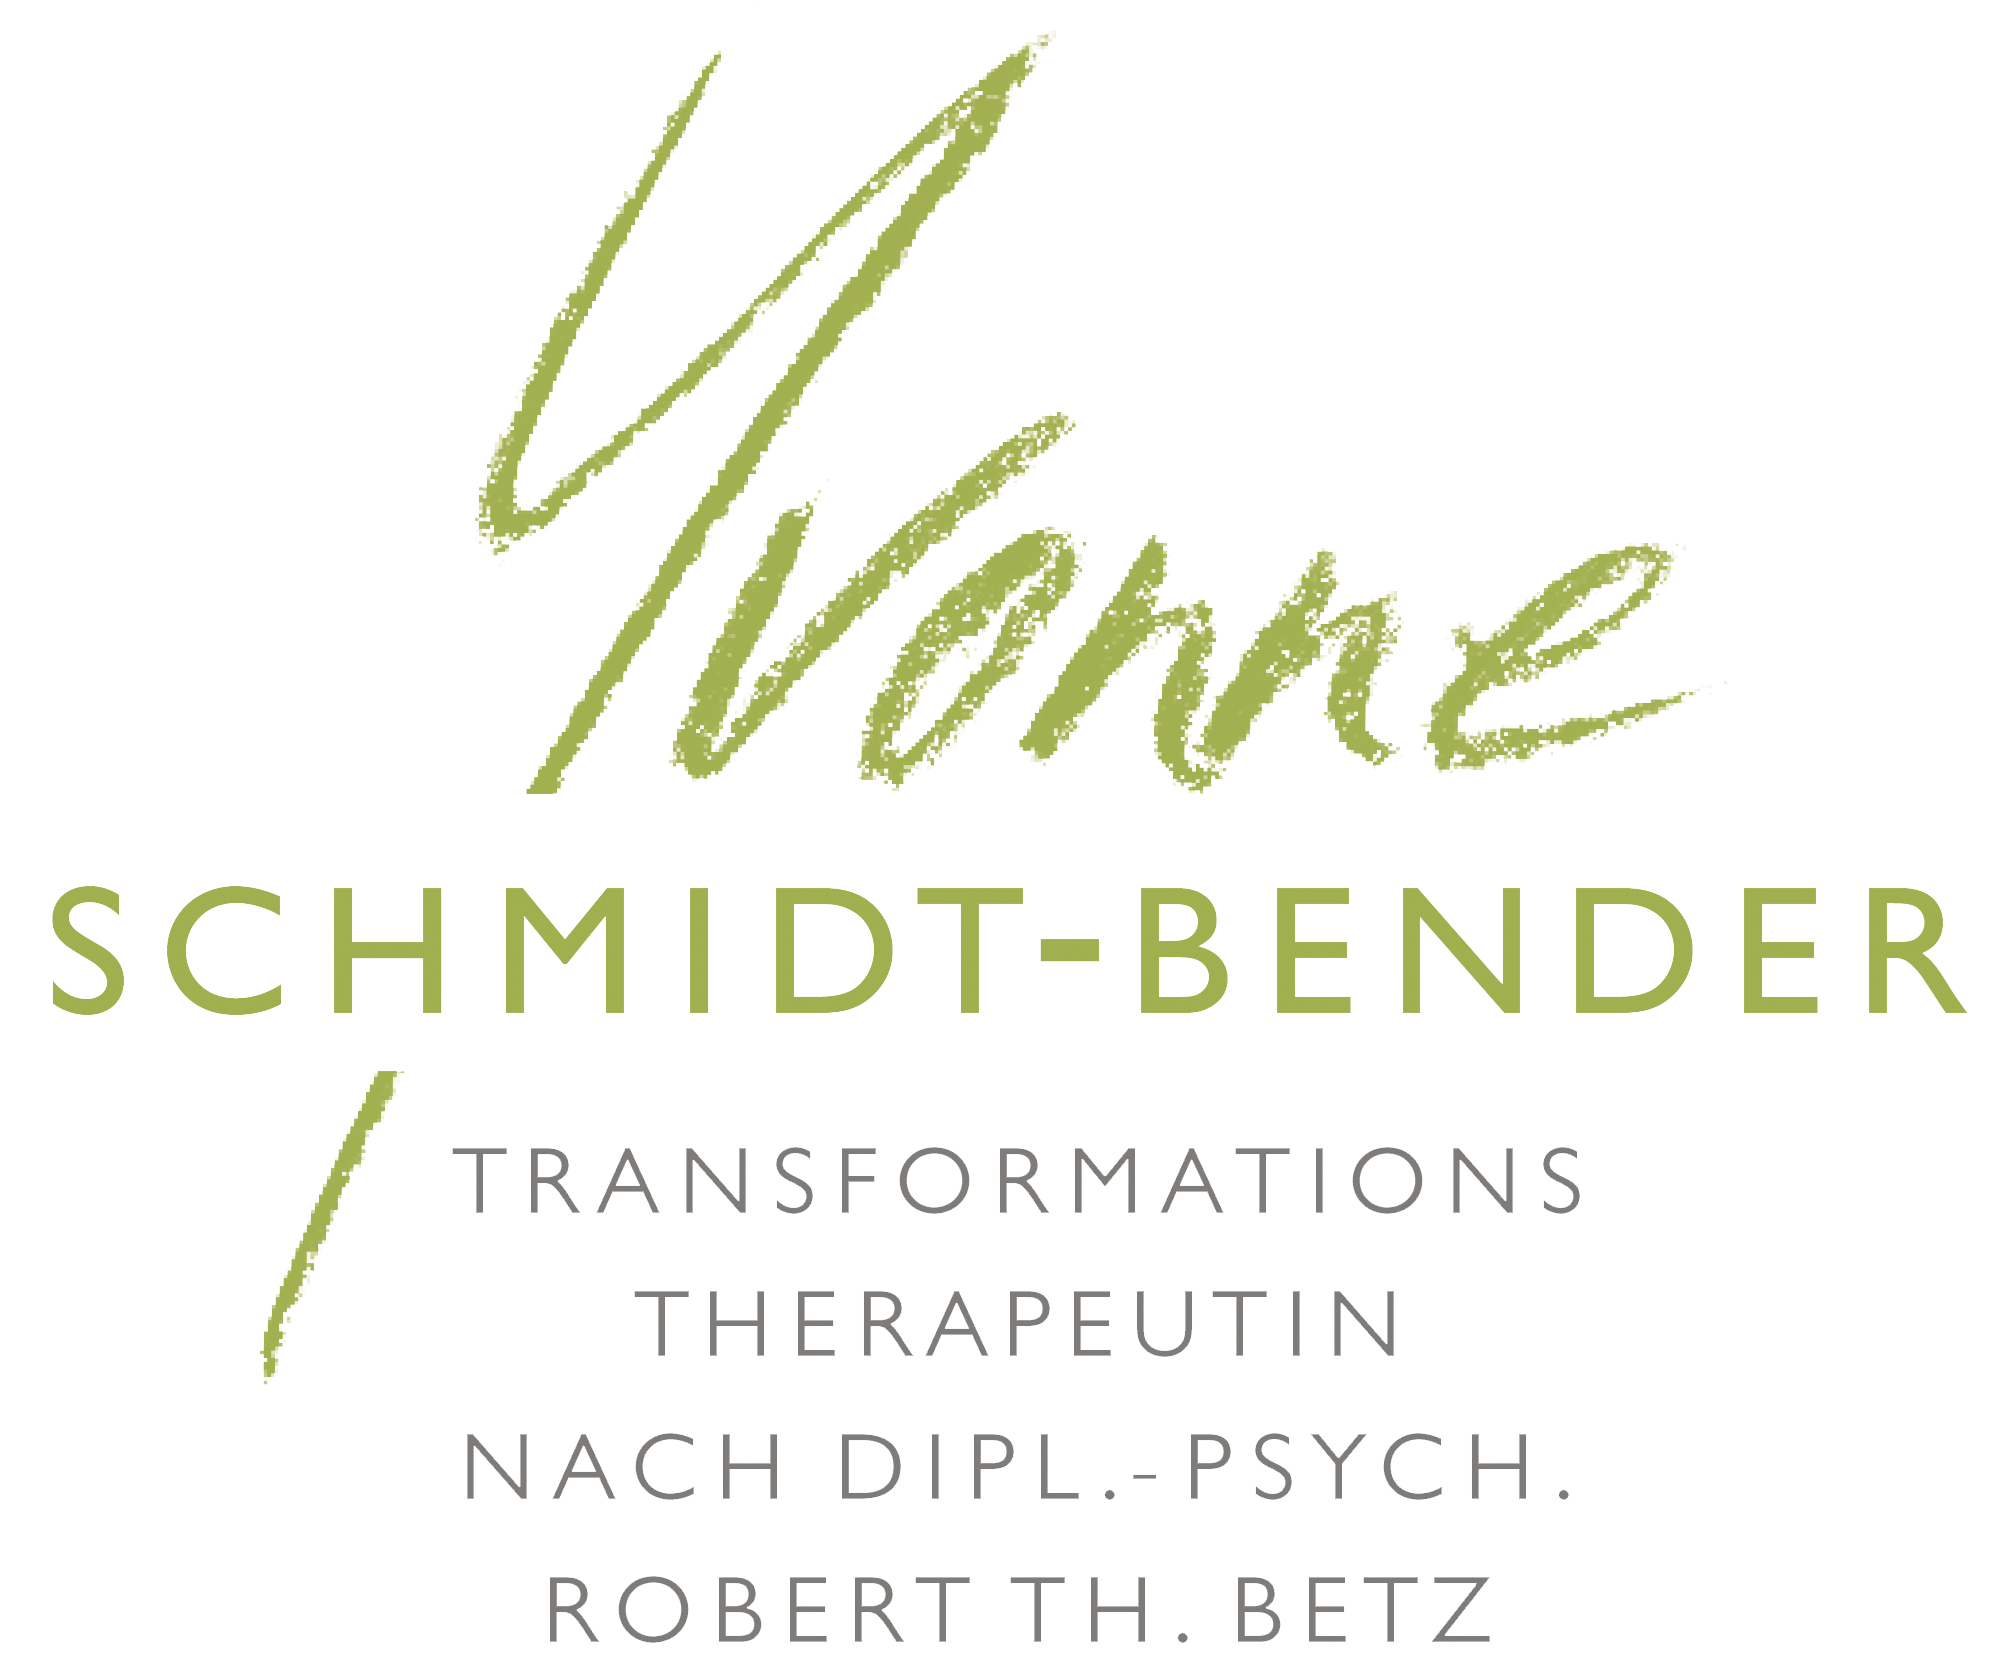 Yvonne Schmitt-Bender | Transformationstherapie || Logo ||